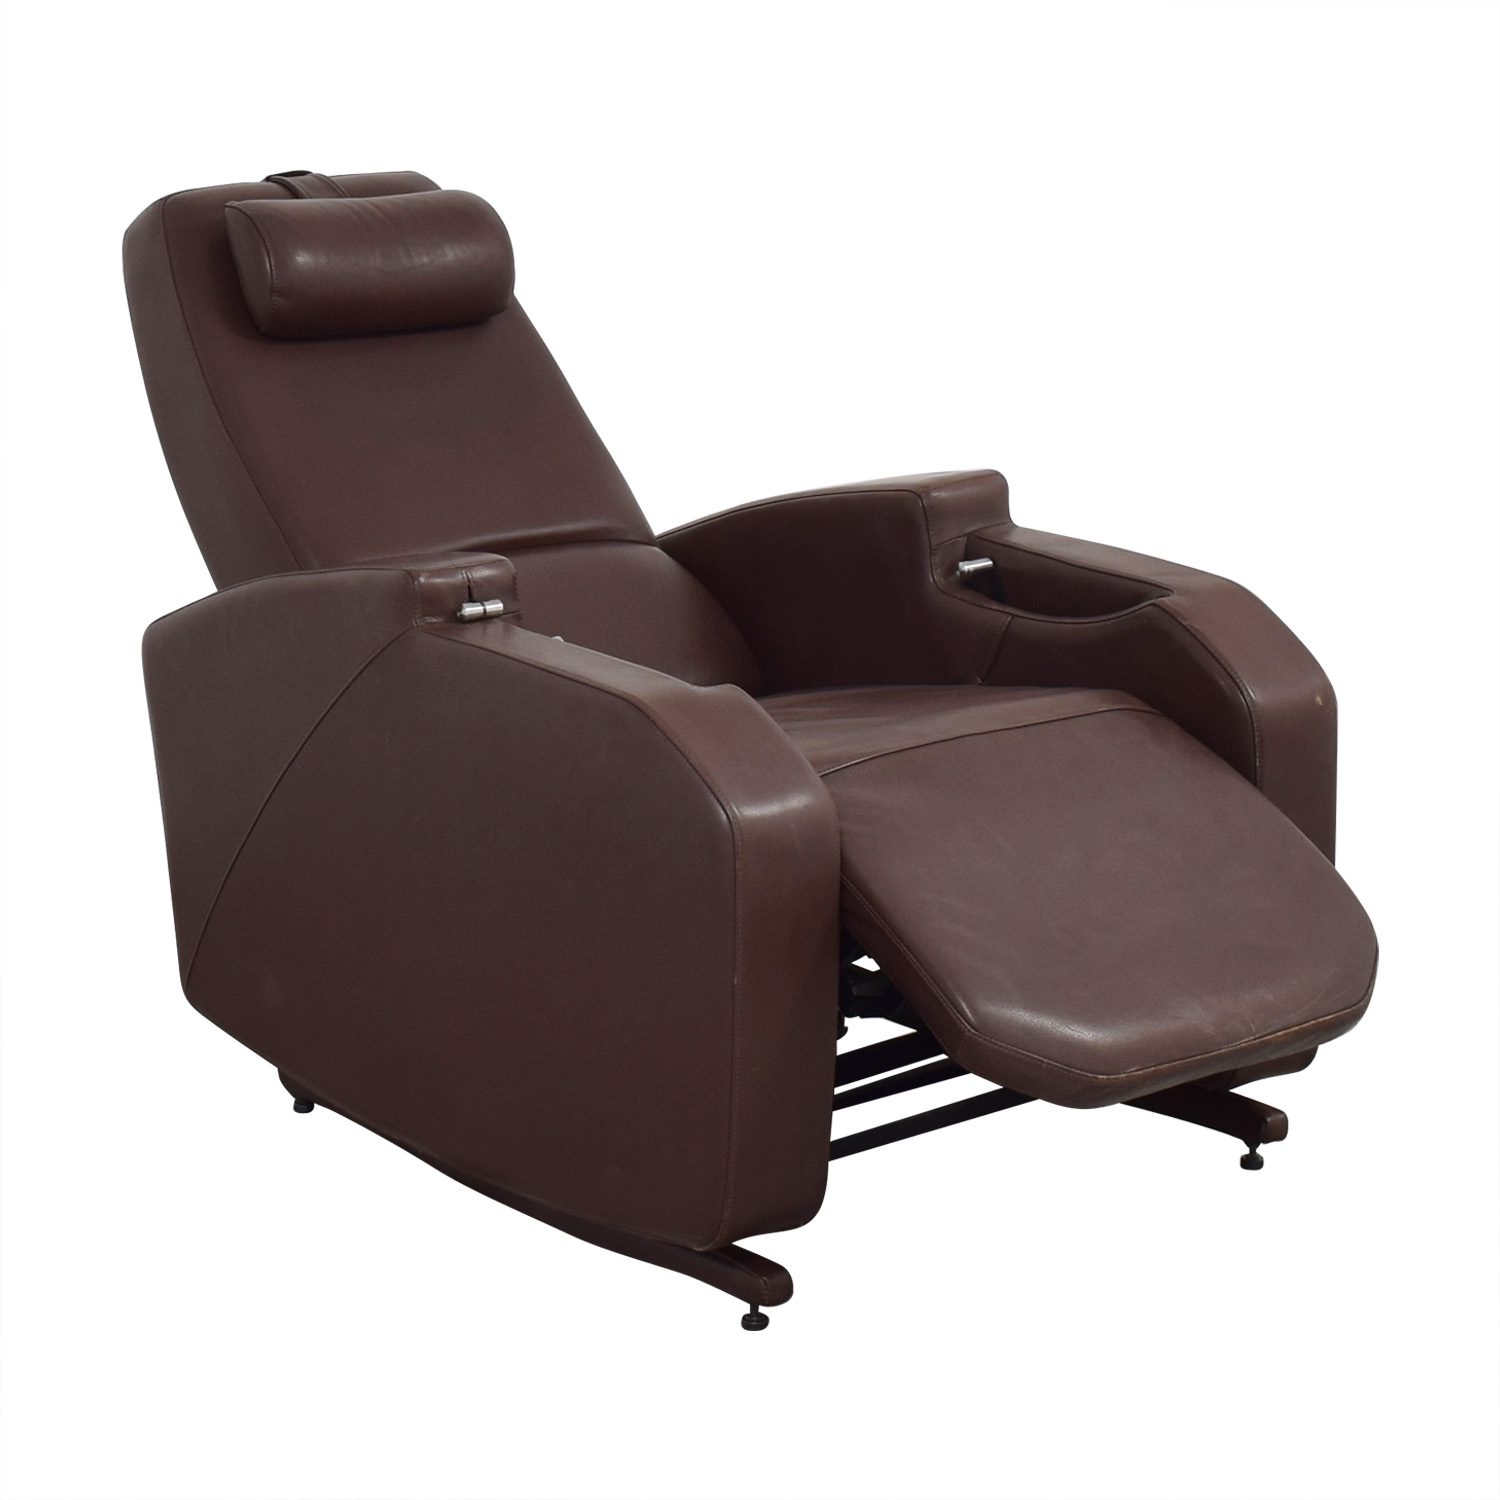 Relax The Back Relax the Back Zero Gravity Leather Rocking Recliner Chairs